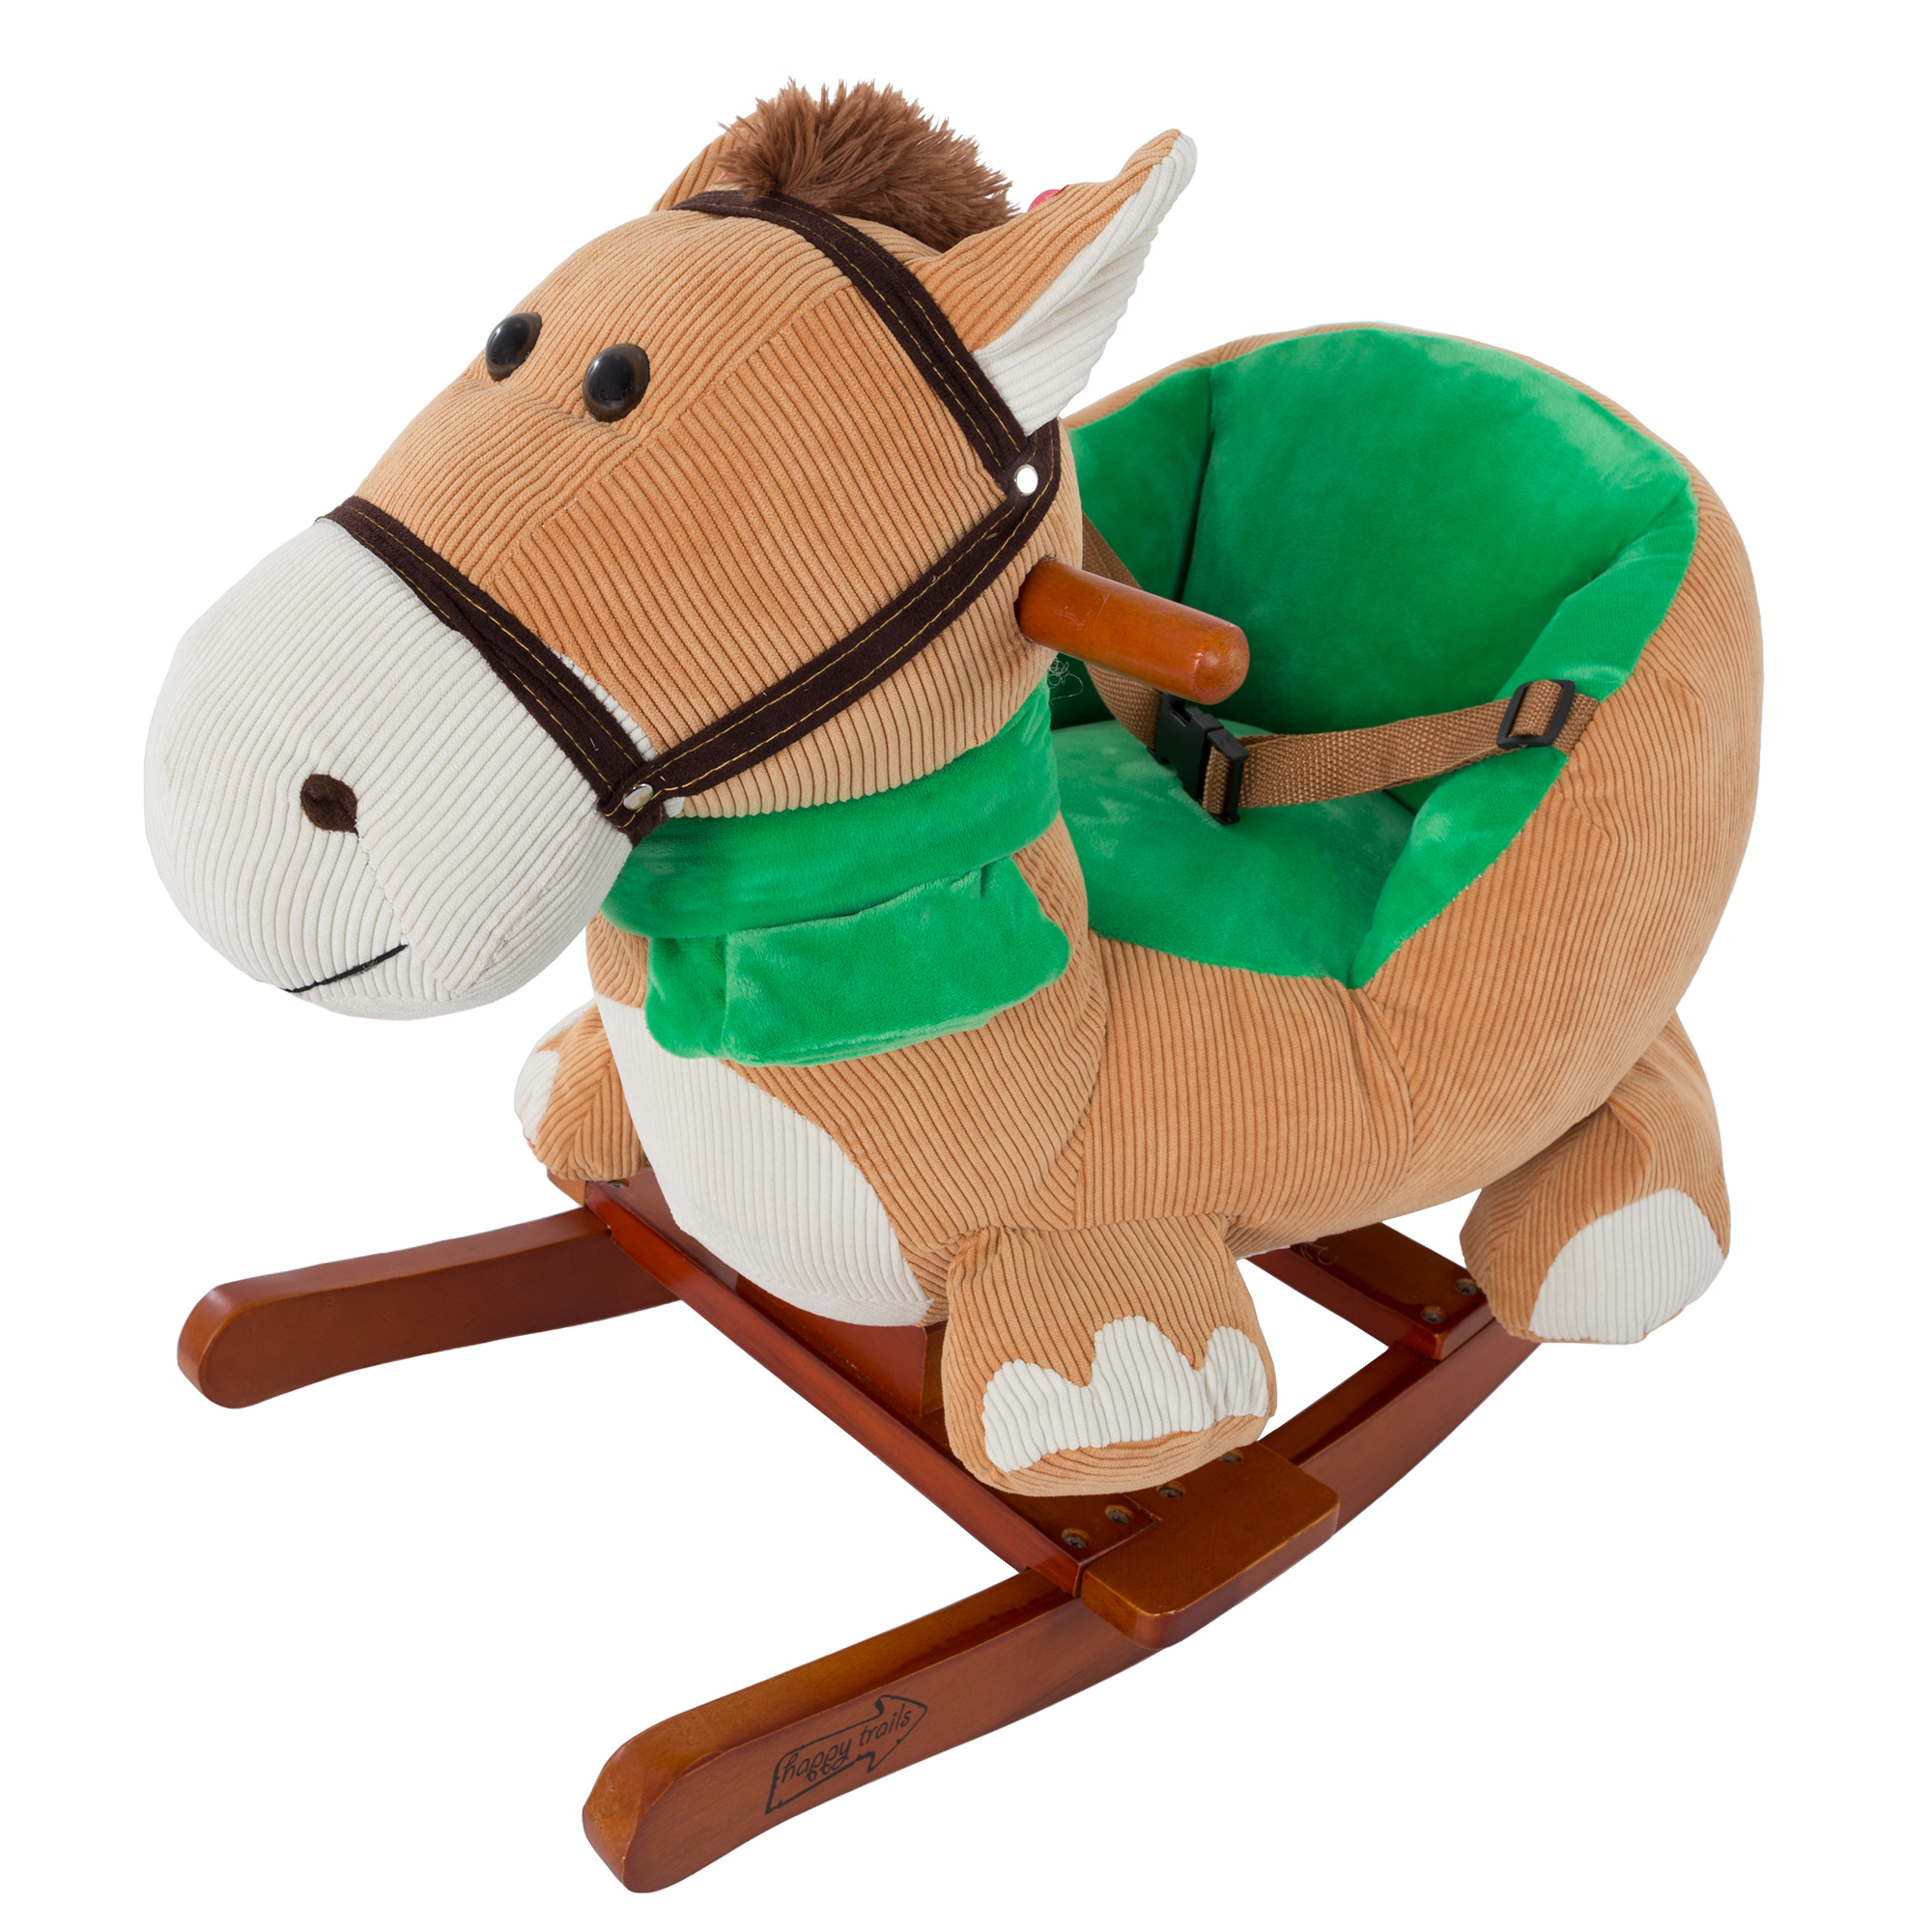 Rocking Horse Plush Animal on Wooden Rockers with Seat & Seat Belt and Sounds, Ride on Toy for Babies 1-3 Years, by Happy Trails